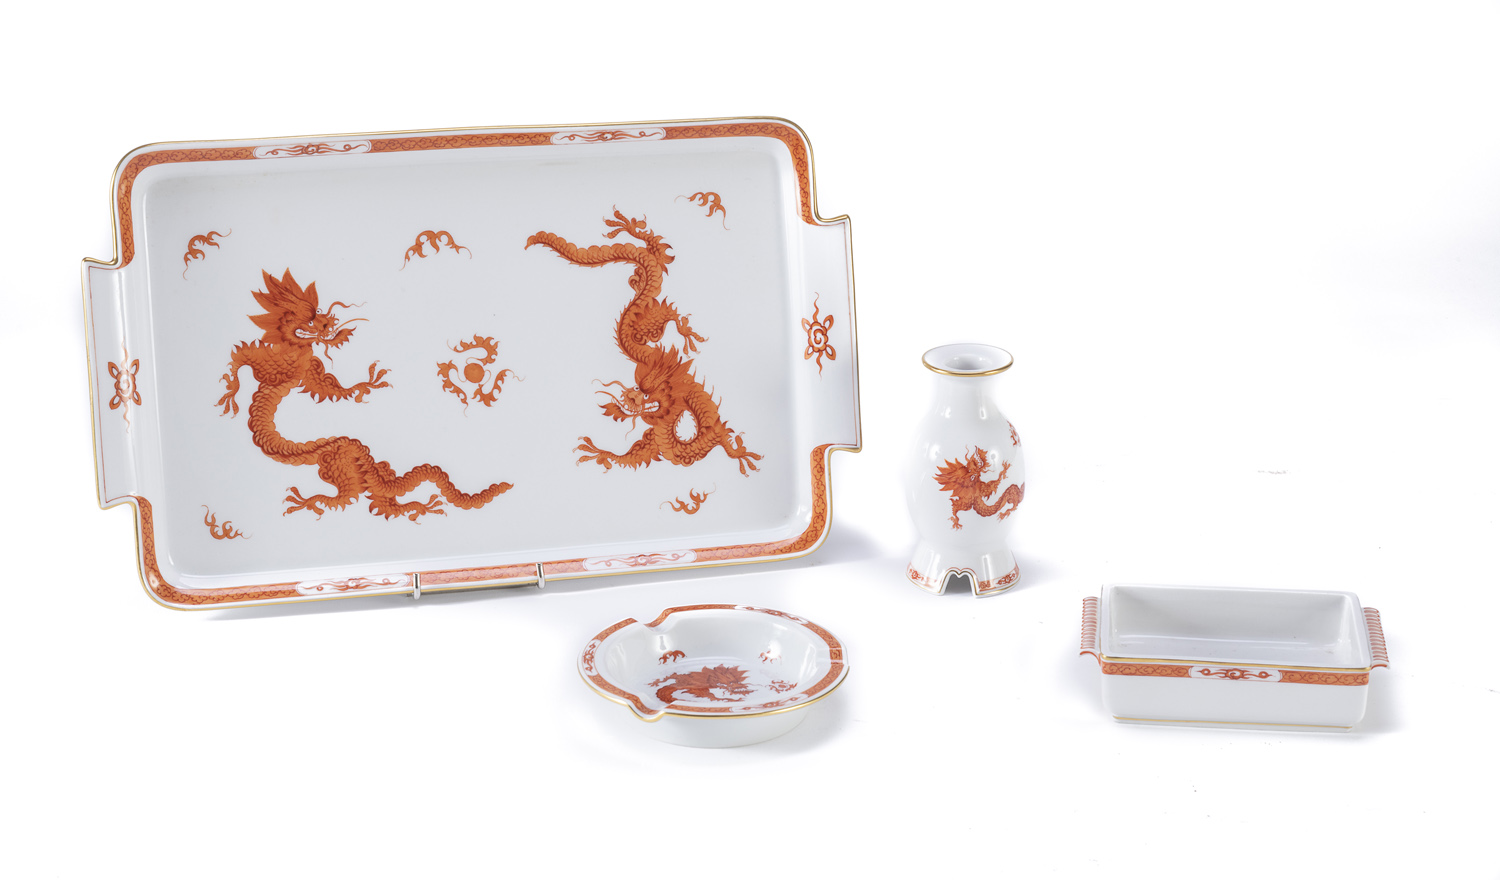 RARE SMOKE SET IN PORCELAIN MEISSEN EARLY 20TH CENTURY